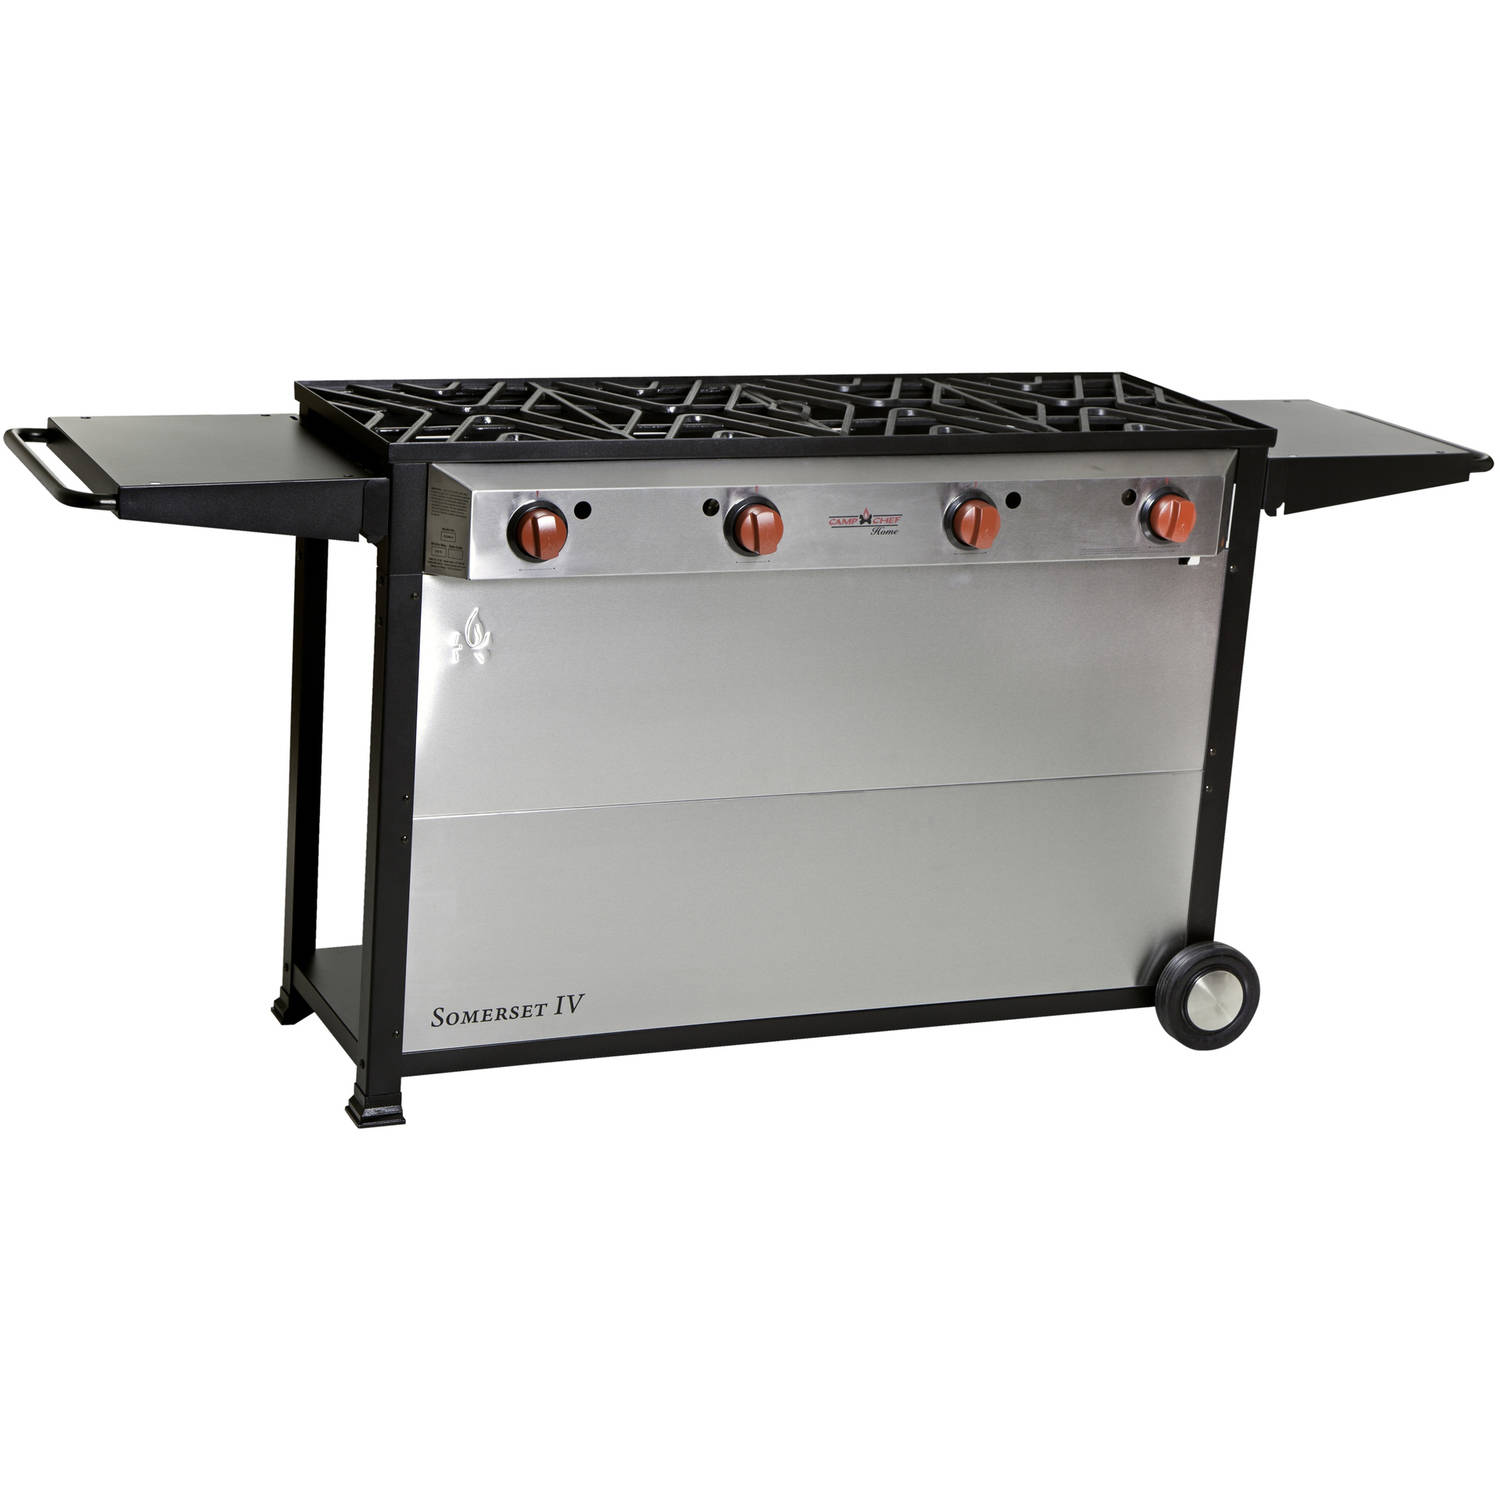 bbq master chef how to change burners